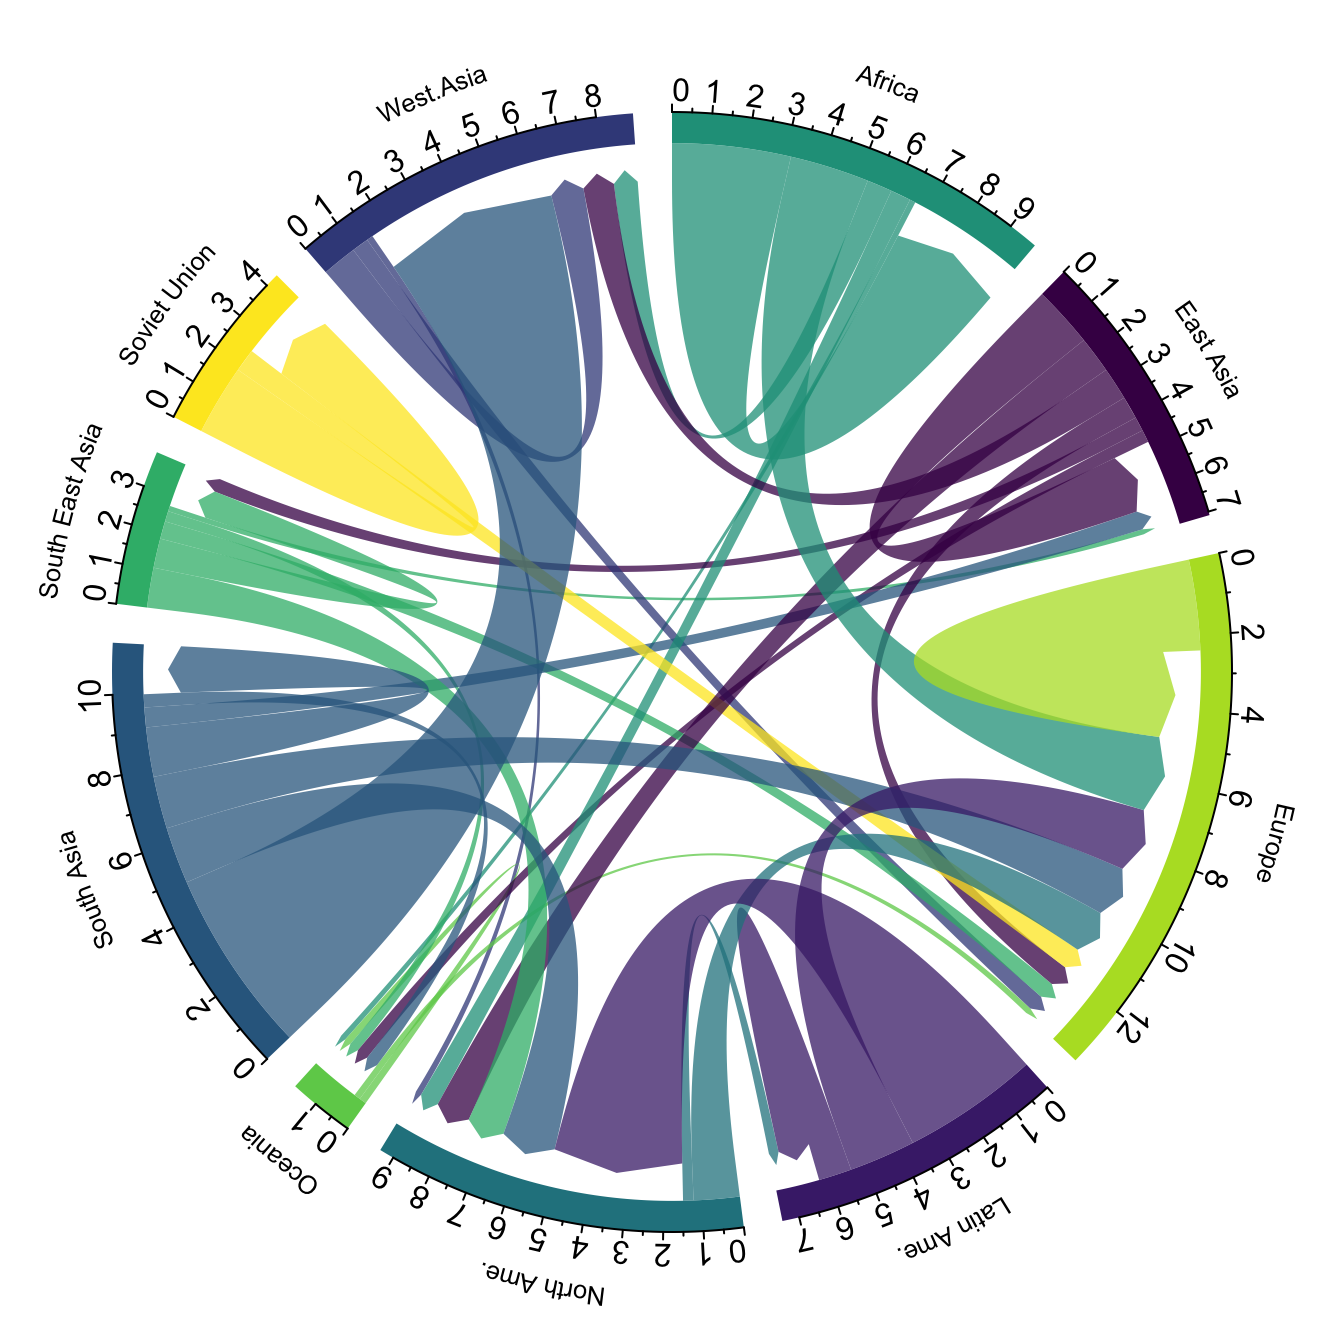 Chord diagram – from Data to Viz